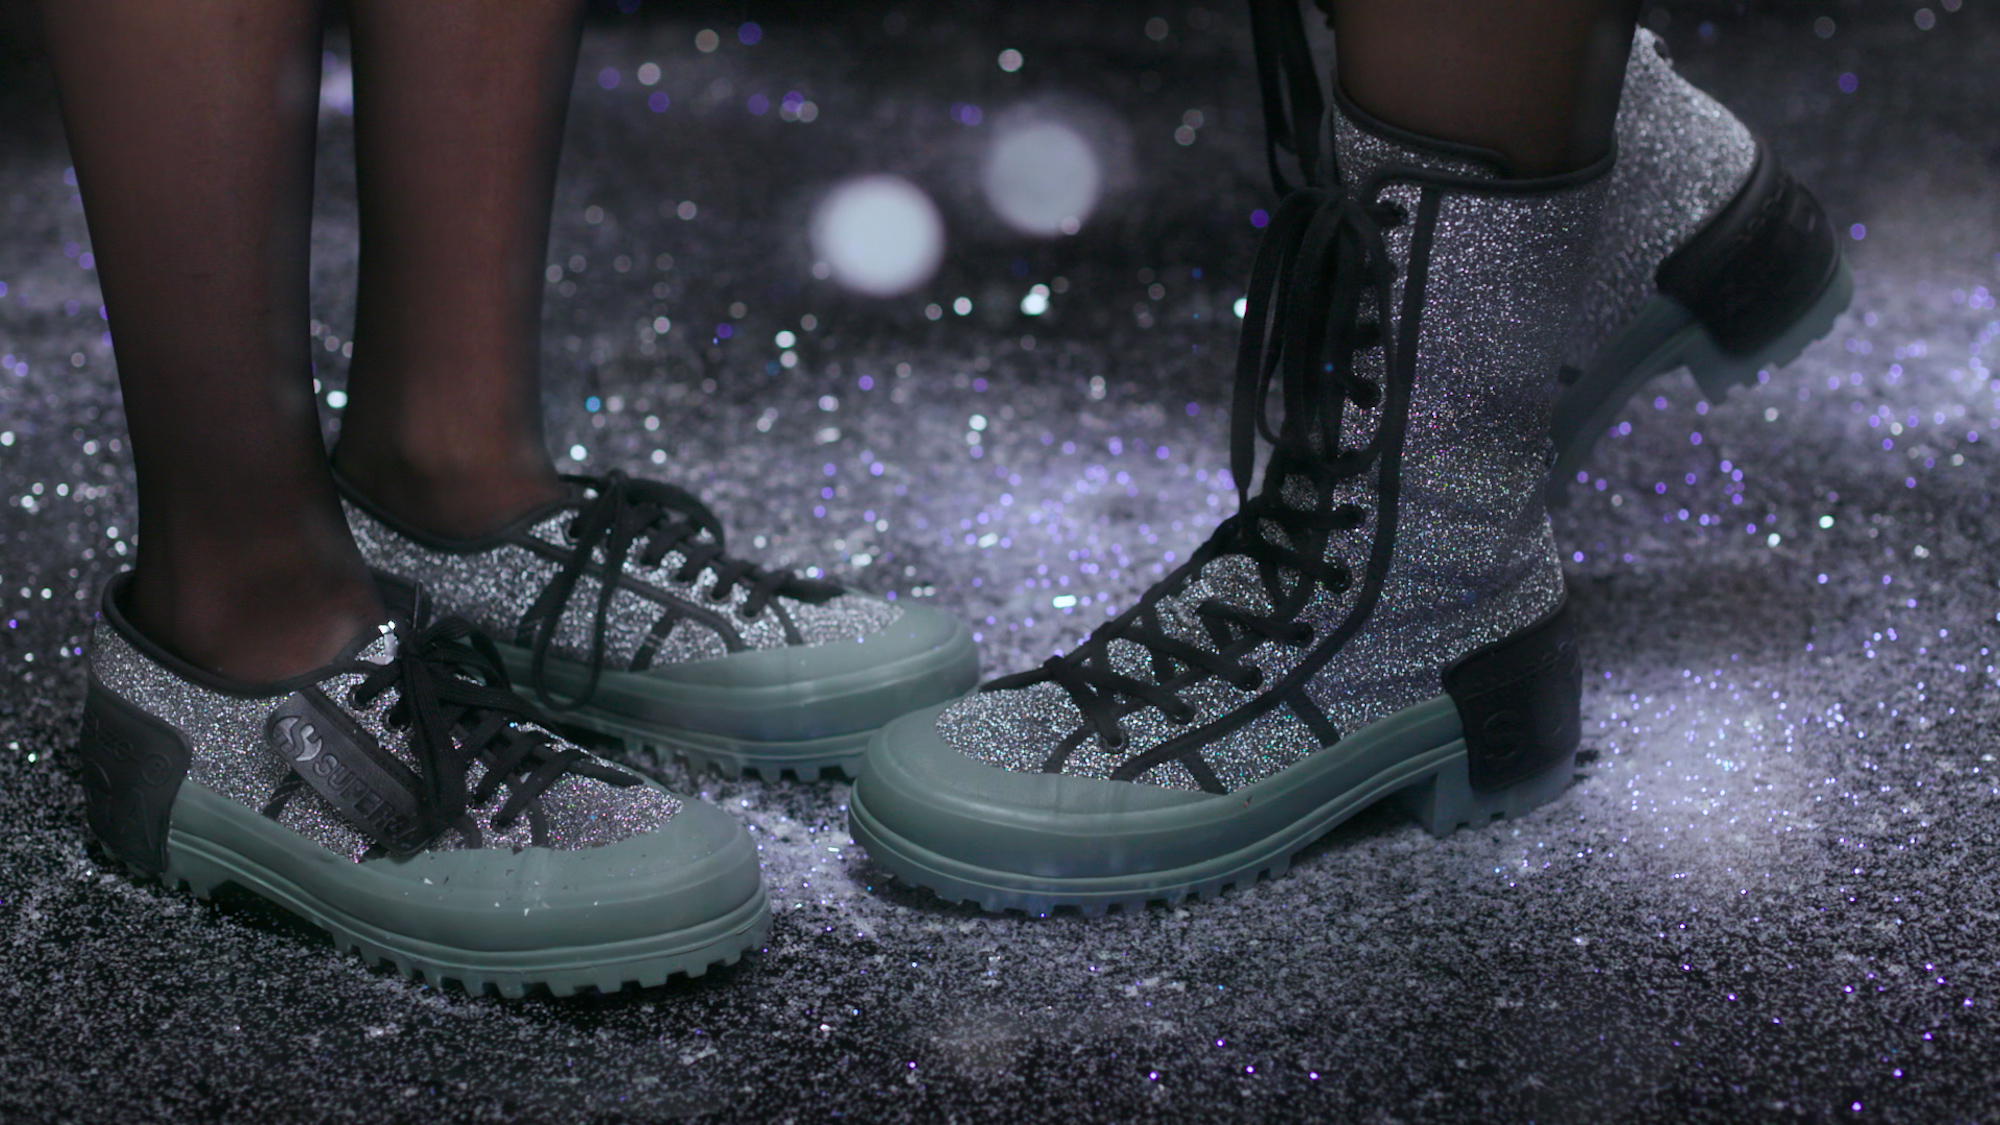 Superga x Marco de Vincenzo collection green glitter boots